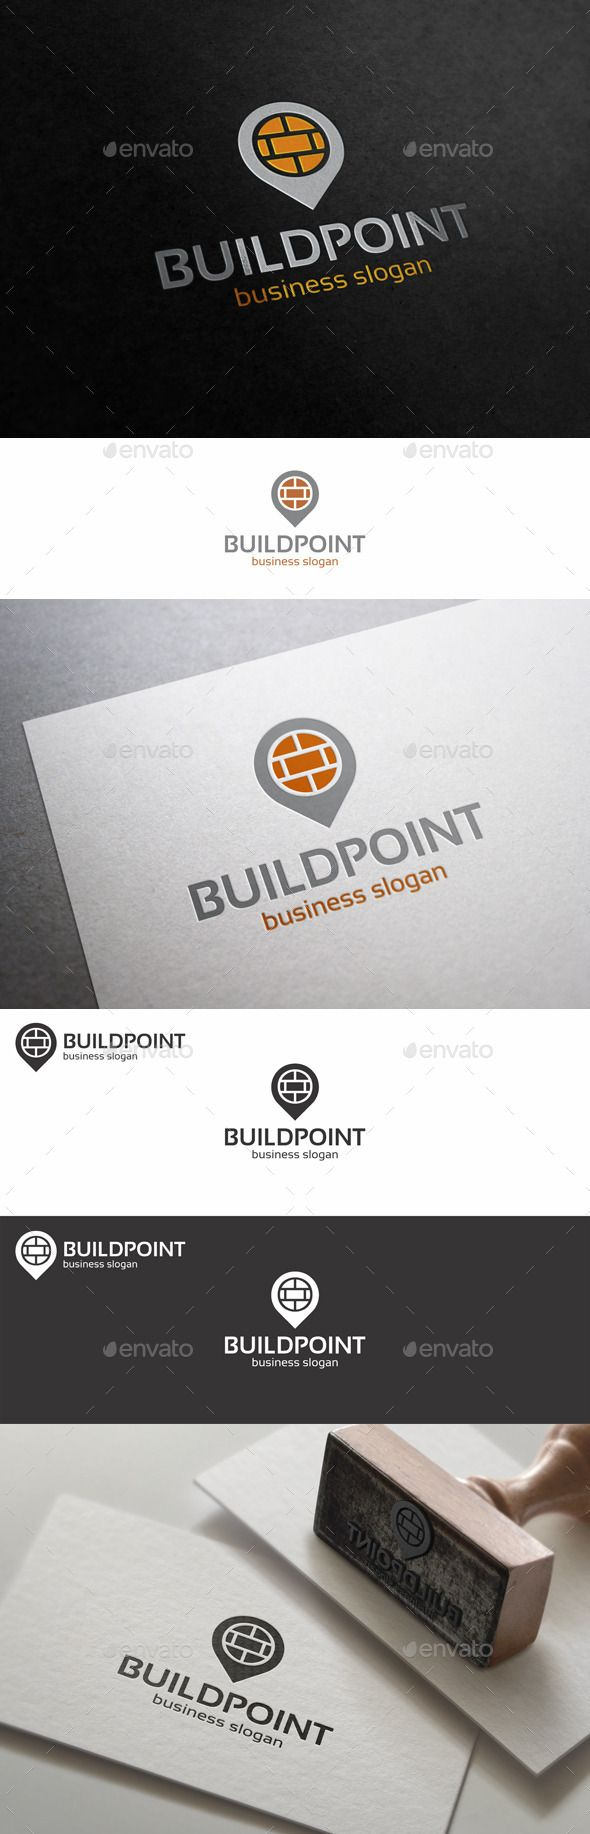 Build Point Place Logo Template – Excellent logo in vector format for real estate company, build logo, build market logo, shops, e-shops, online shop, e-market, tv shop, shopping tv, online shopping, e-store, retail businesses, construct service, tech support, and related companies.  Professional and unique logo suitable for construction, real estate, realty, mortgage, property business, building company, builders, hotel and resort business service, etc.